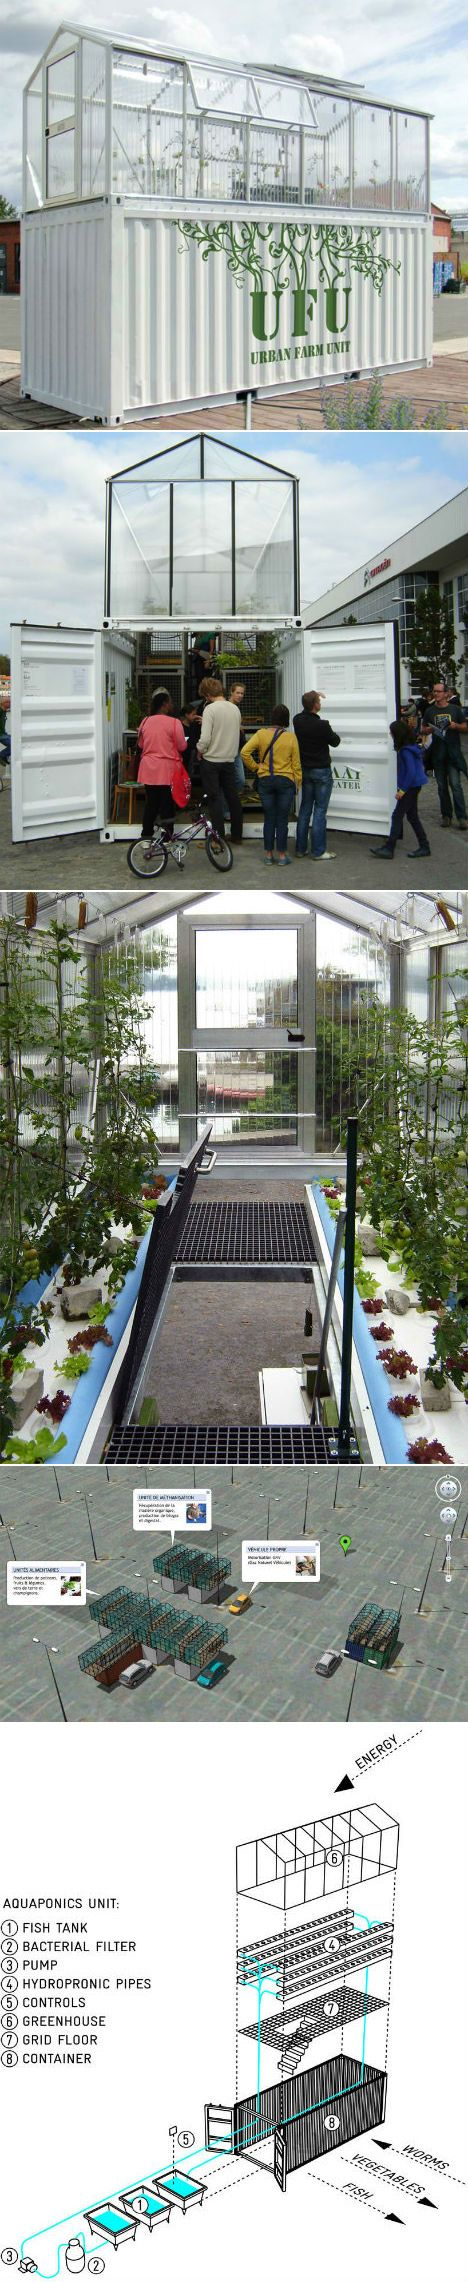 Shipping Container Turned into a Urban Farm Unit #containerhome #shippingcontainer